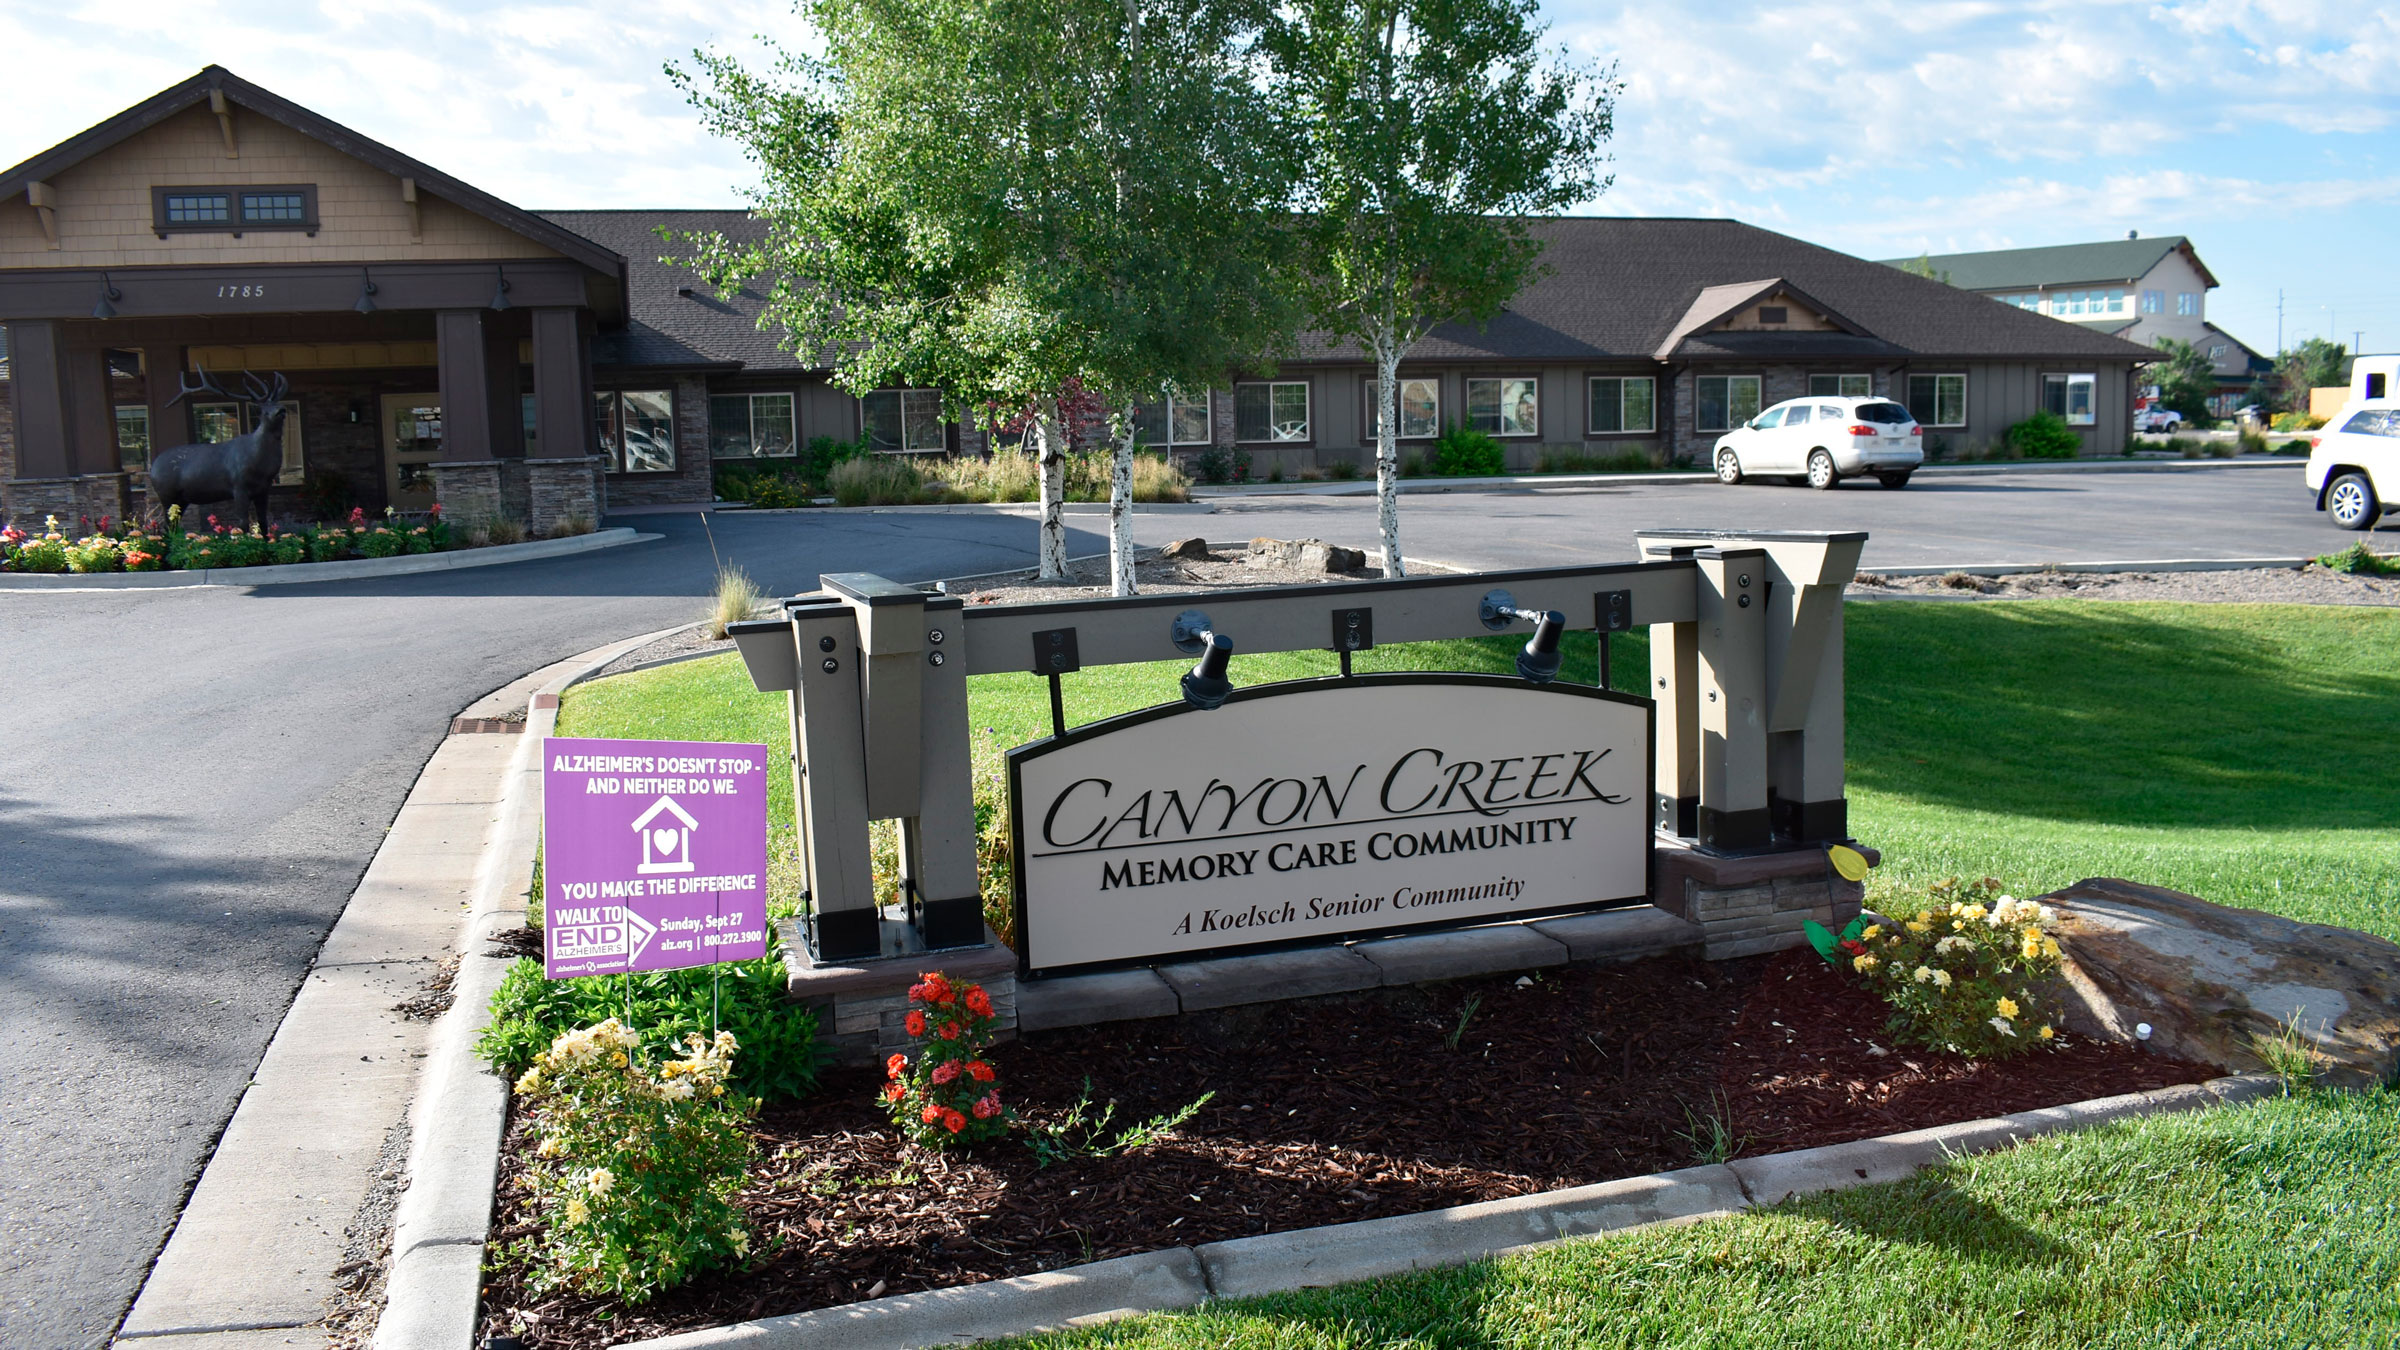 Canyon Creek Memory Care is seen in Billings, Montana, on Friday.